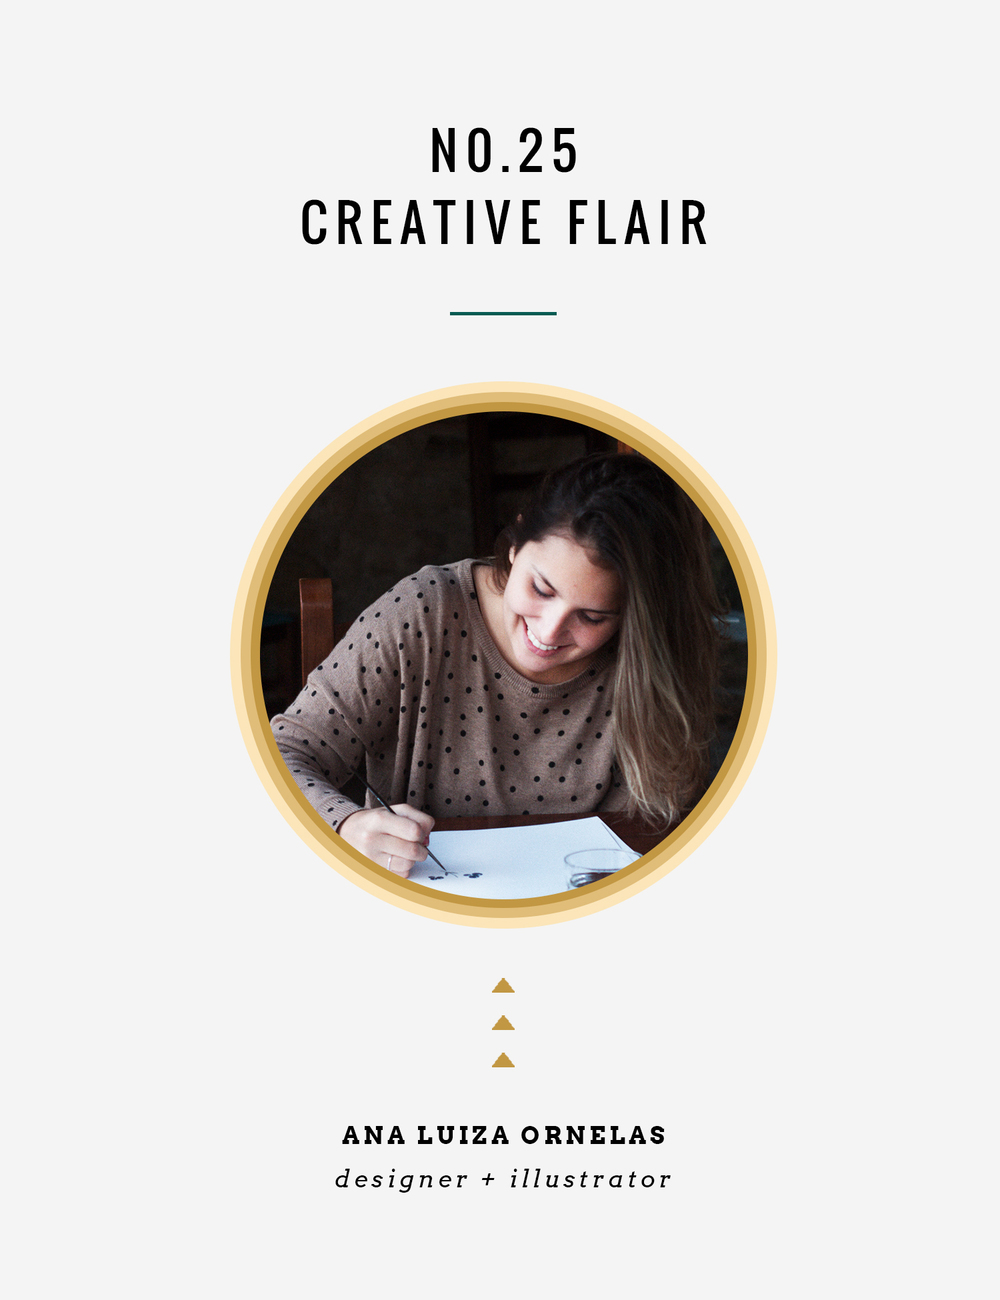 CreativeFlair : Ana Luiza Ornelas | InBetween the Curls